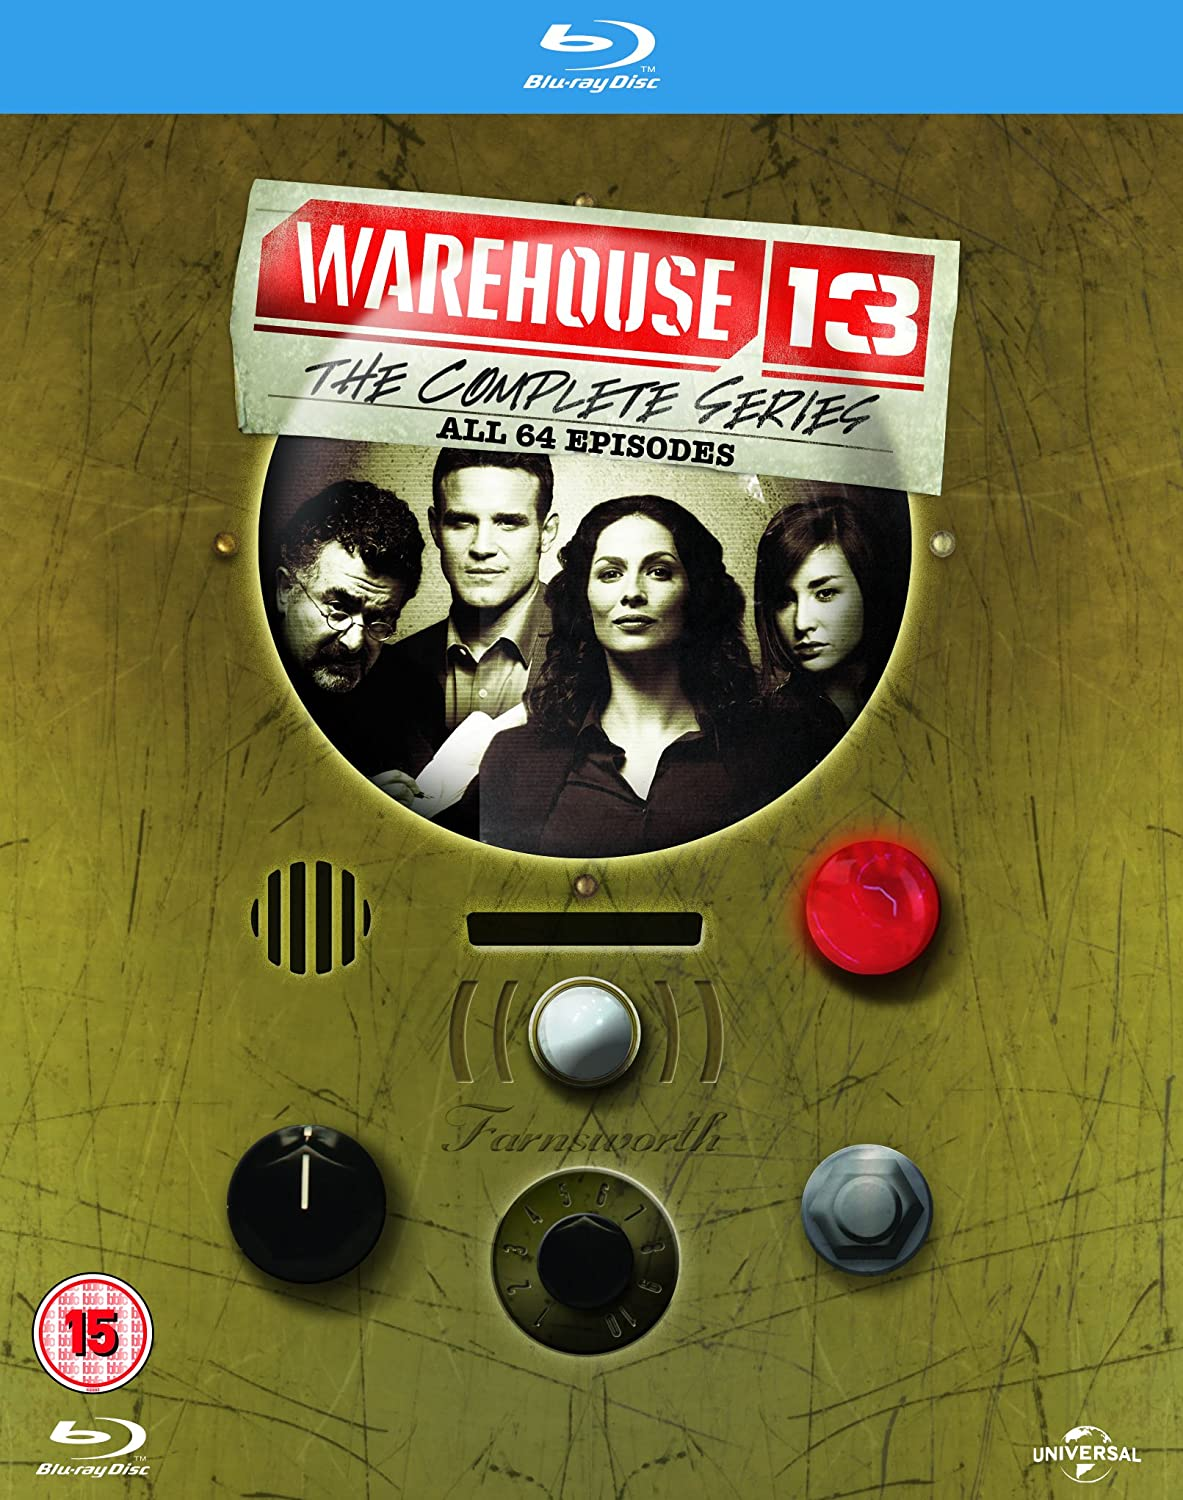 Warehouse 13: The Complete Series UK Region Free